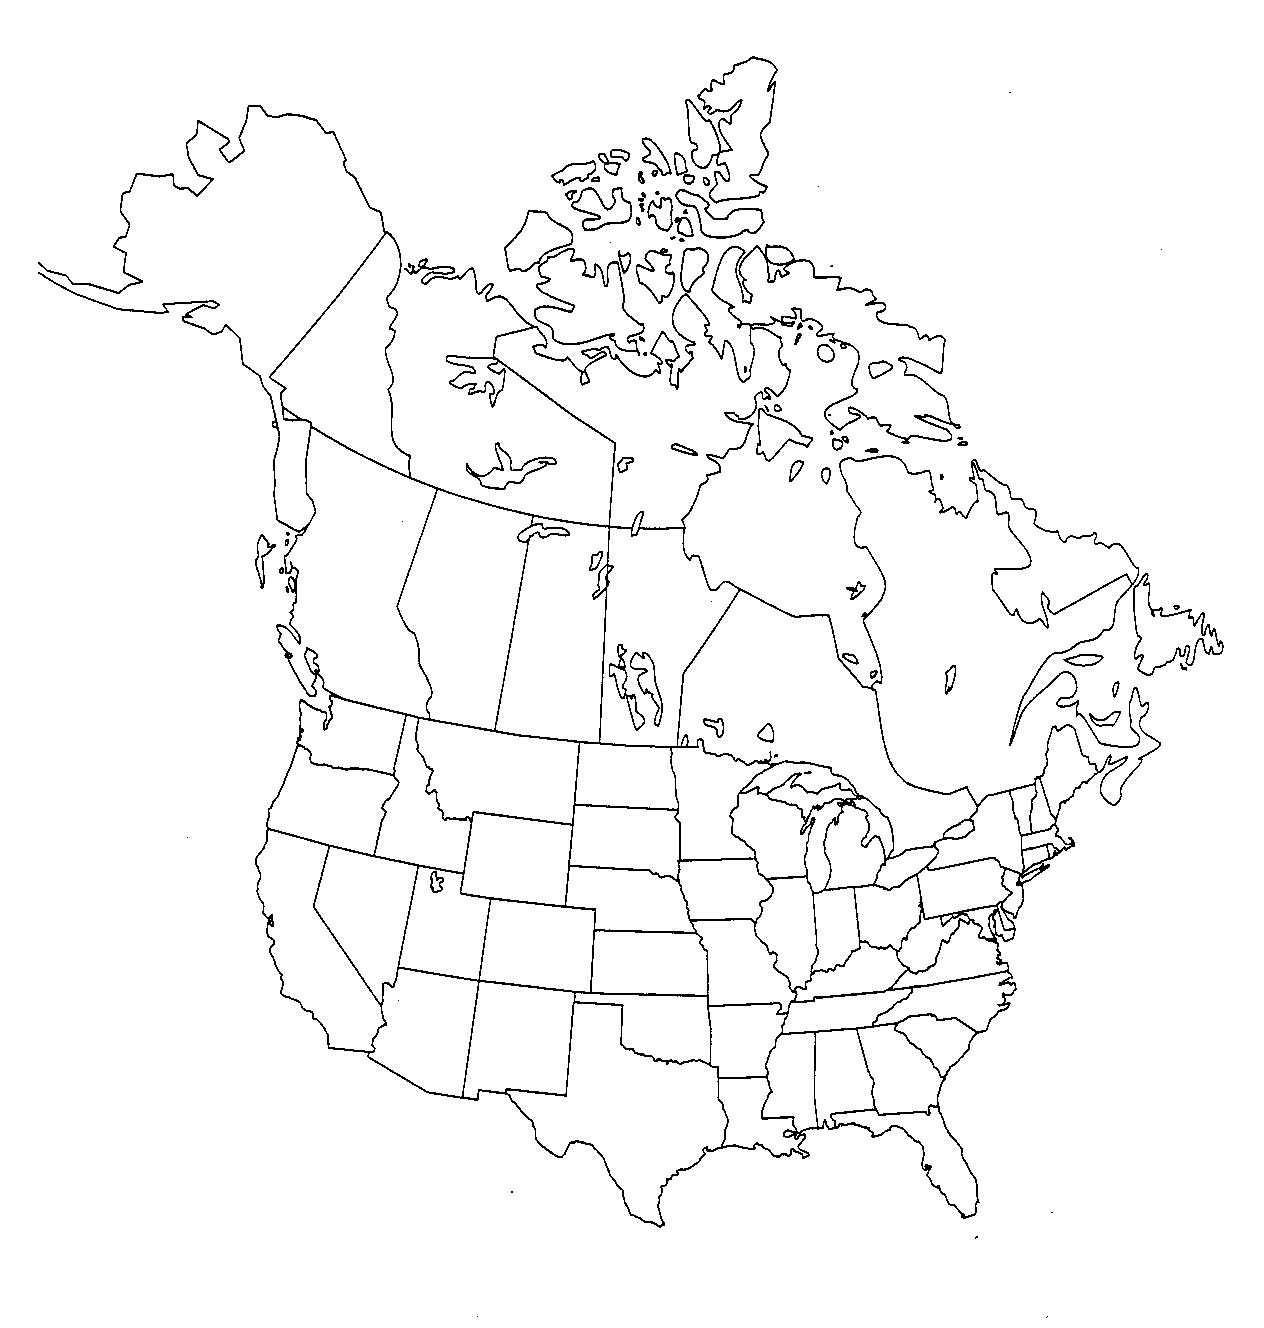 united states outline drawing at getdrawings free for personal States and Capitals 1264x1328 best solutions of free vector graphic usa map united states image